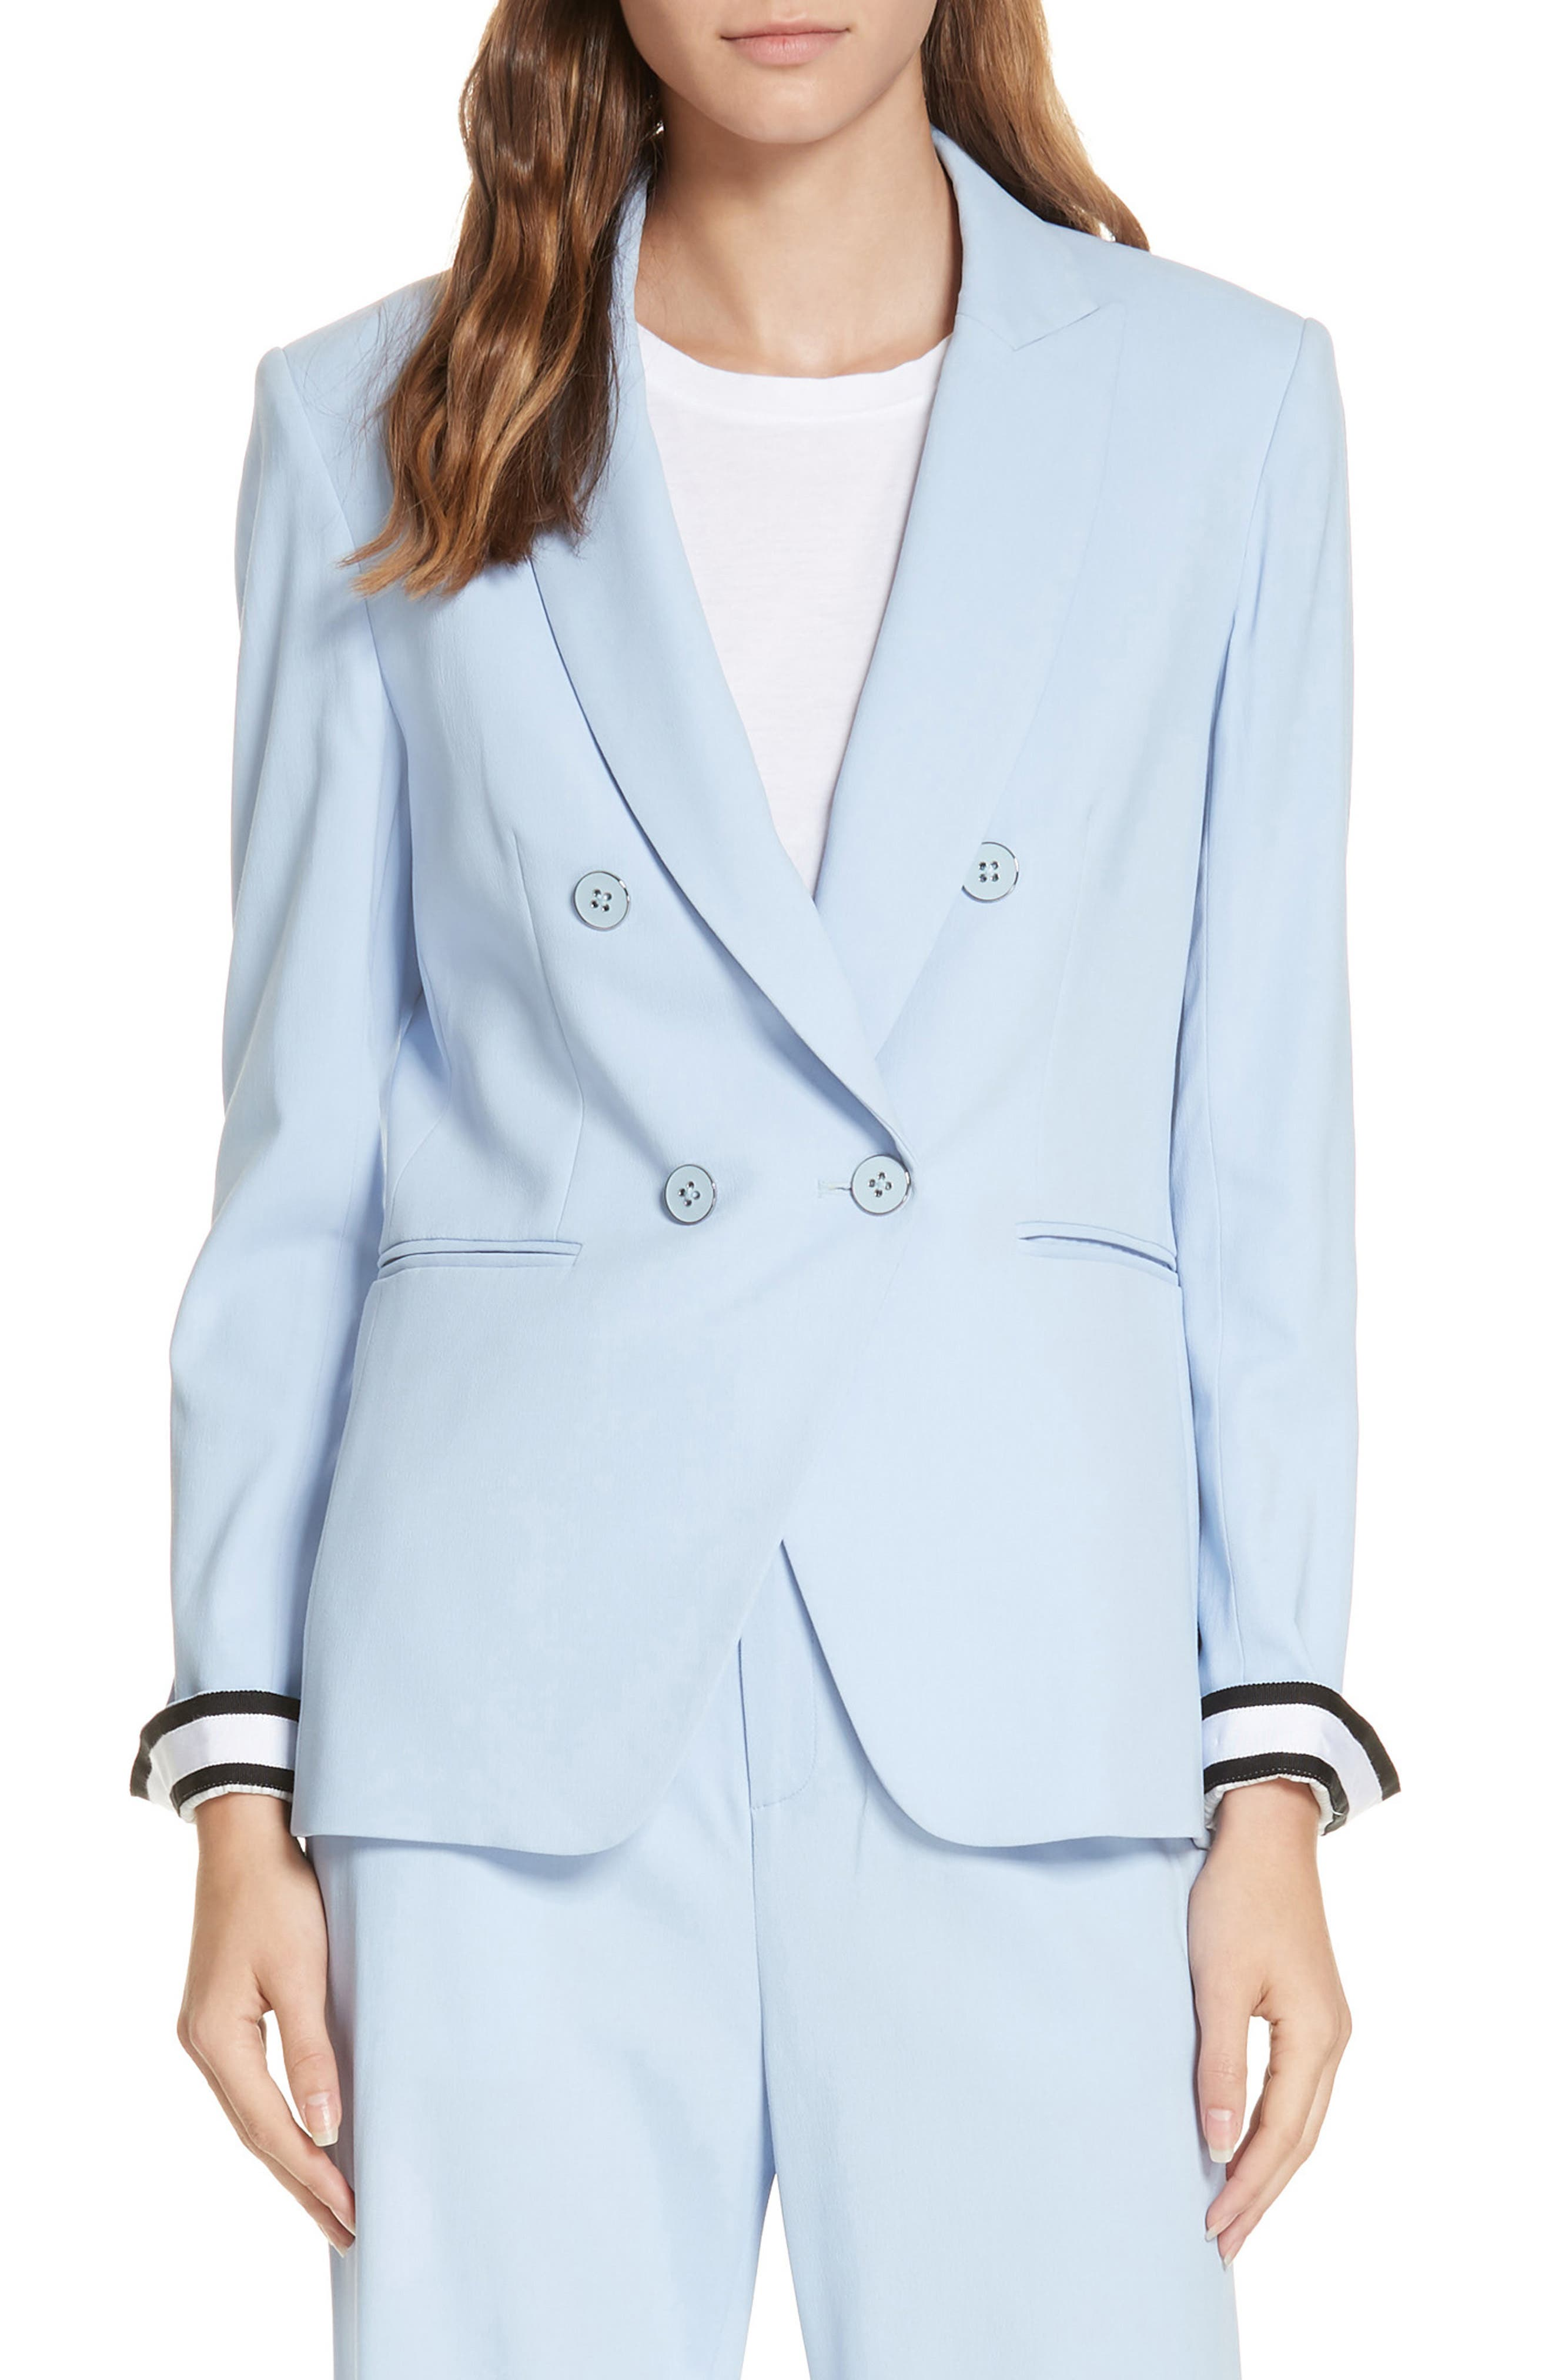 Aros Dickey Jacket,                             Alternate thumbnail 2, color,                             LIGHT BLUE